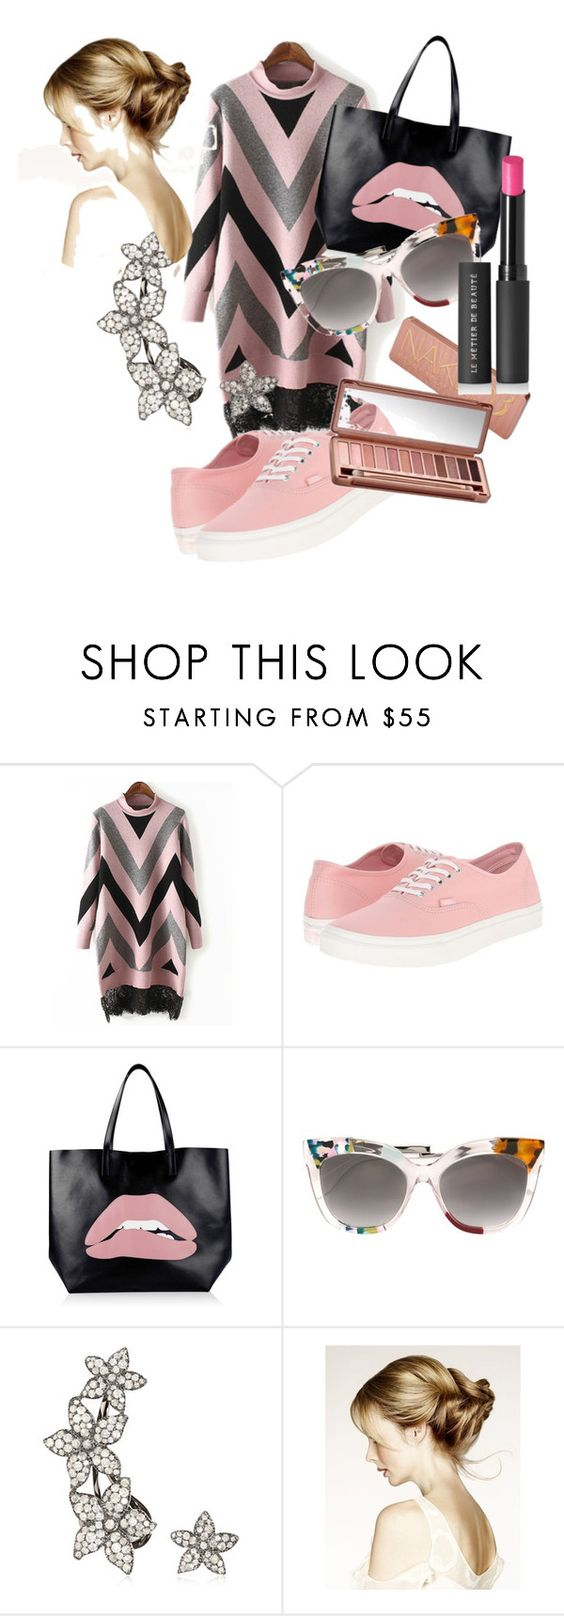 """Untitled #128"" by mikicaajla ❤ liked on Polyvore featuring Vans, RED Valentino, Fendi, Urban Decay and Le Métier de Beauté"